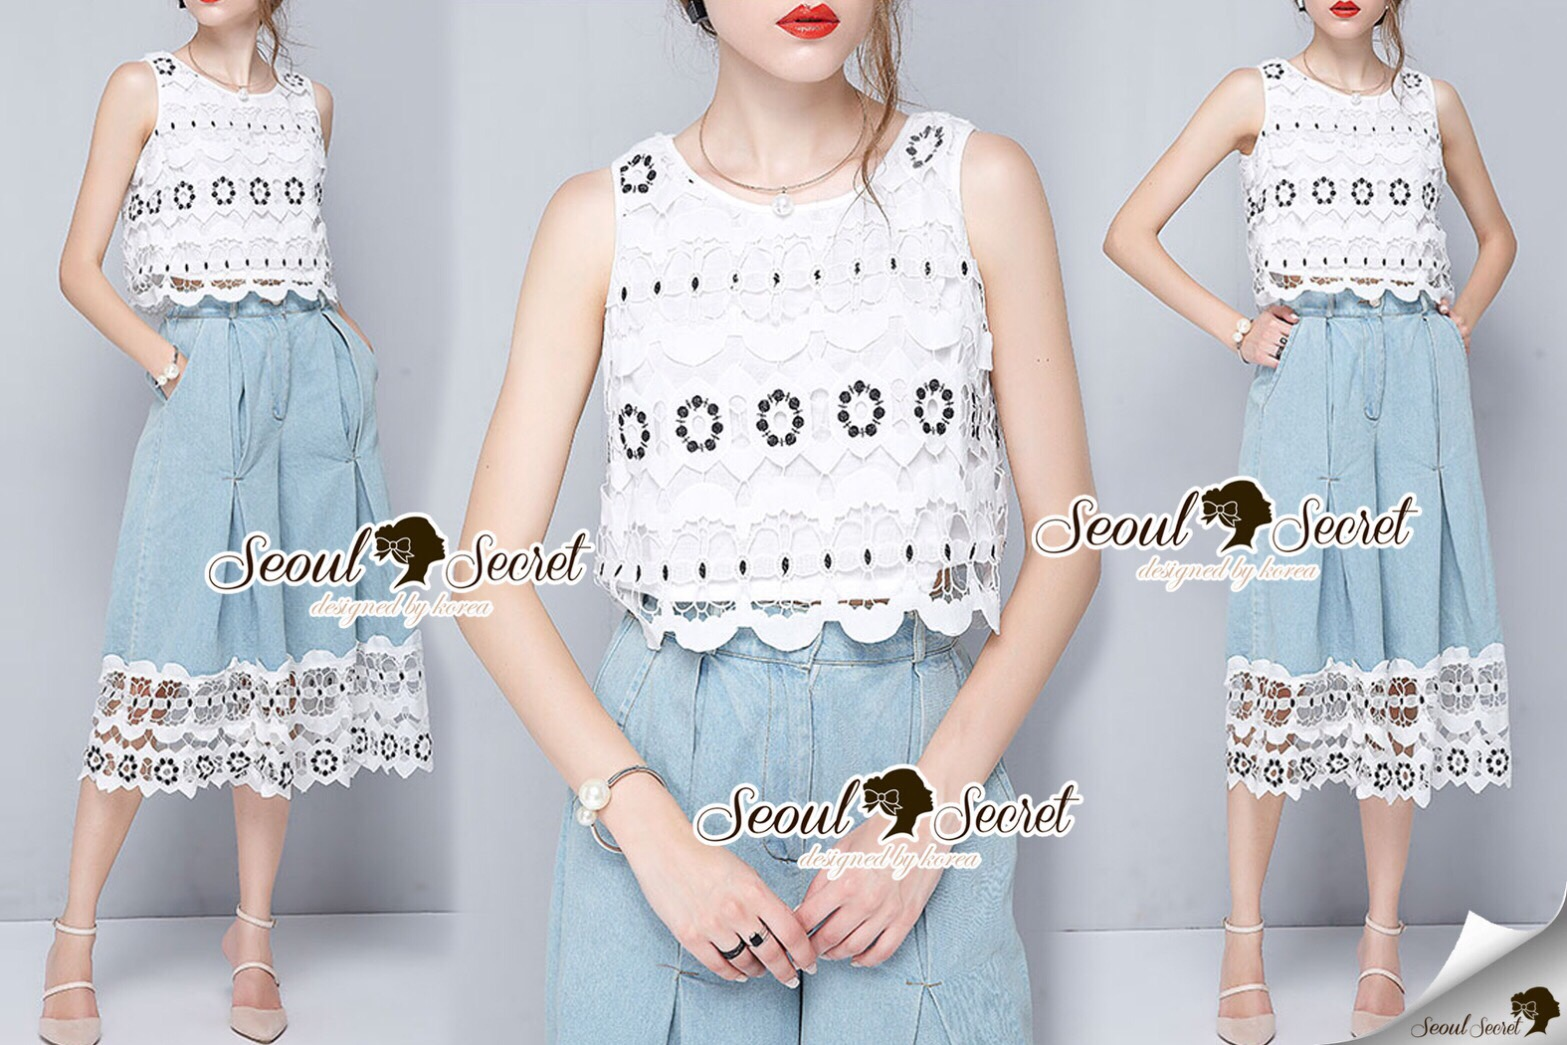 Lady Ribbon Korea Brand SS07300516 Seoul Secret Say's... LollyPop Tail Lace Chic Set